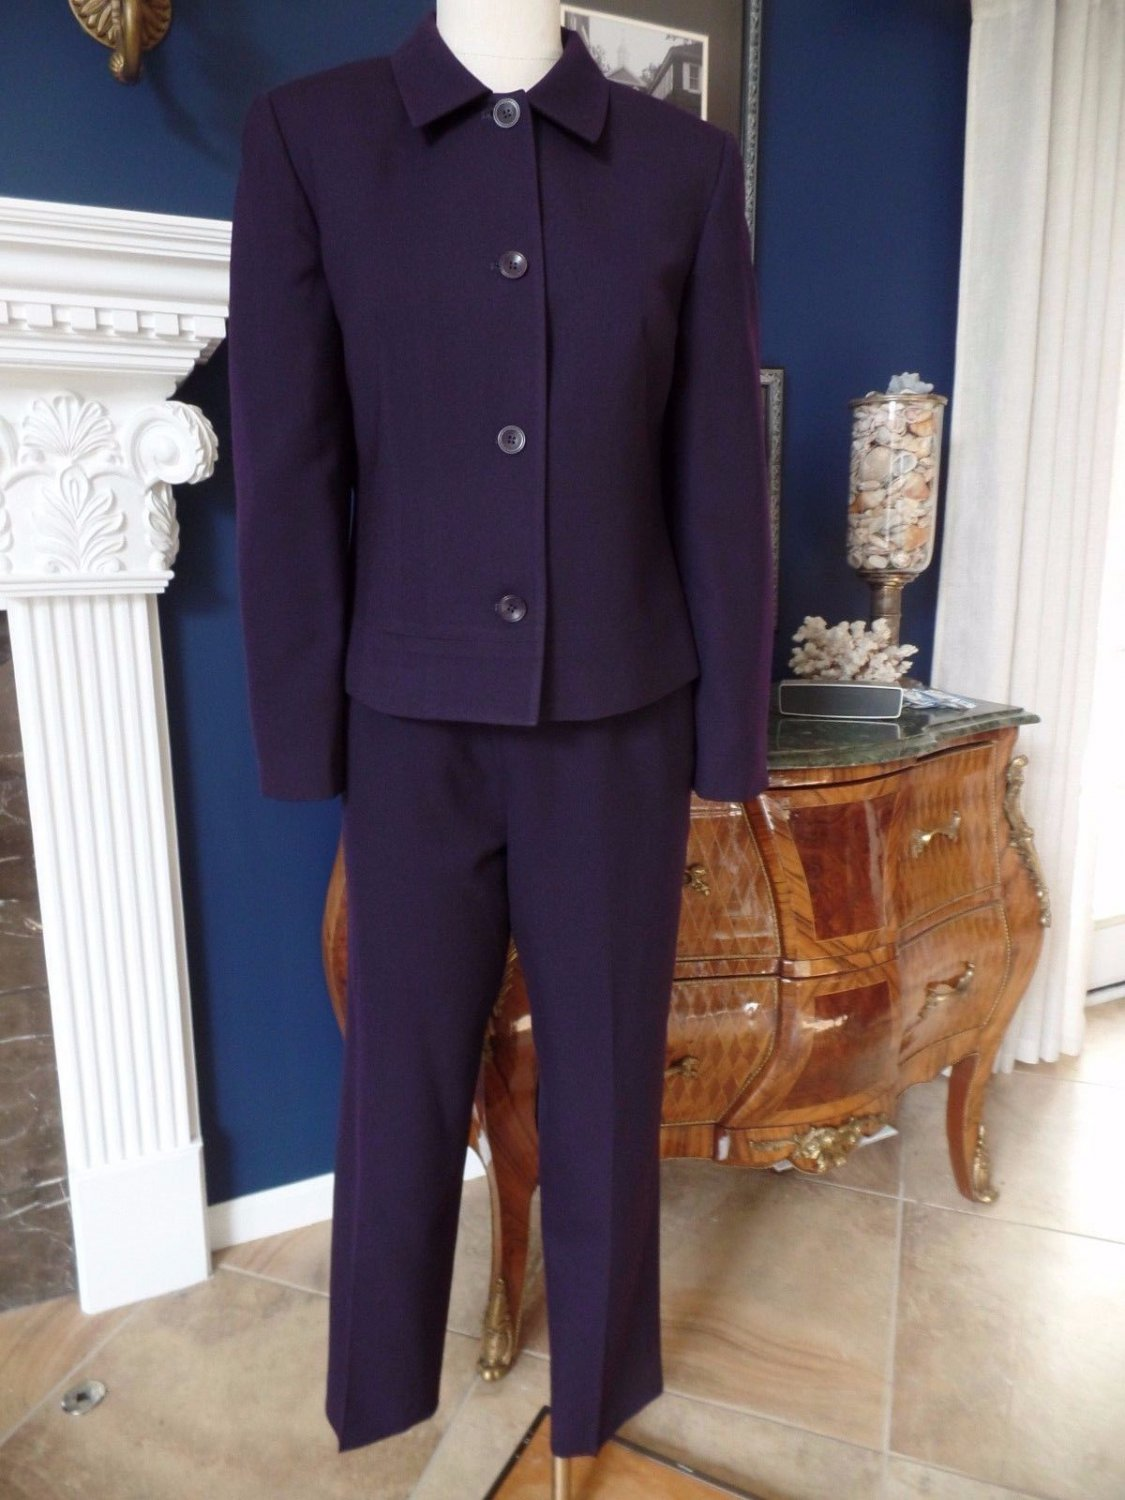 TALBOTS Purple 100% Wool  Blazer and Dress Pant Suit 8/10